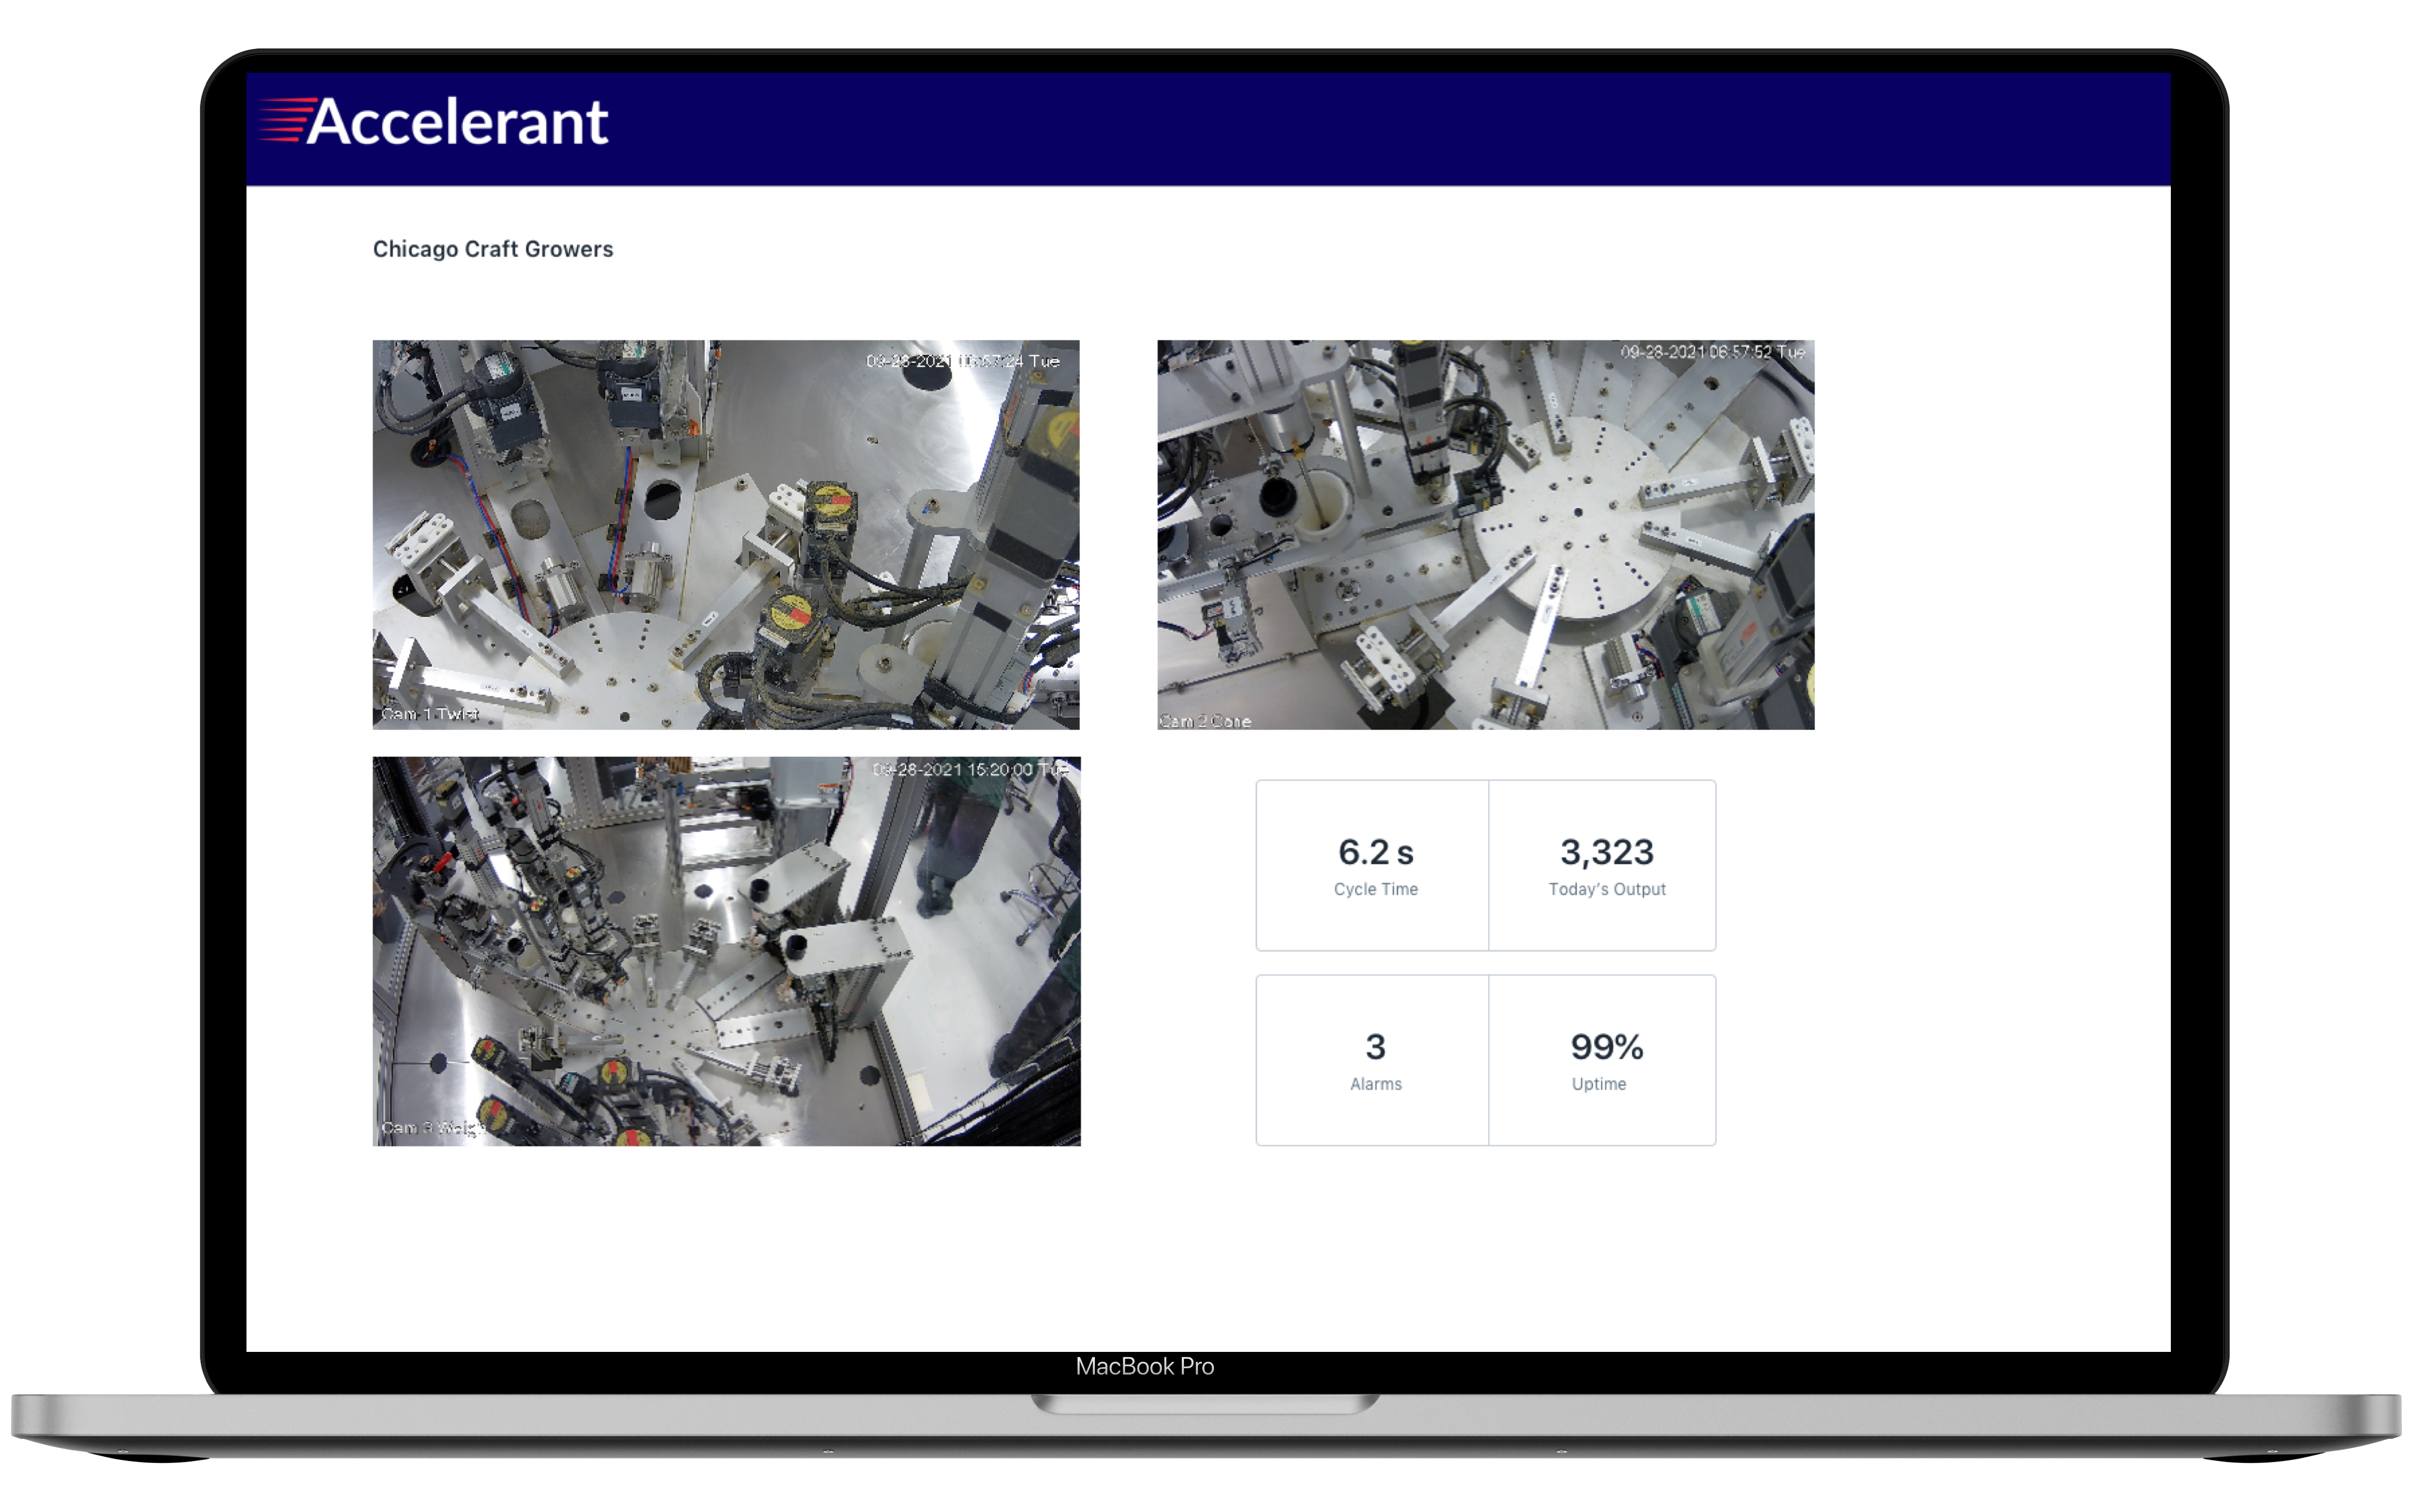 Accelerant's network operations center for monitoring machine performance and assisting customers using remote cameras.